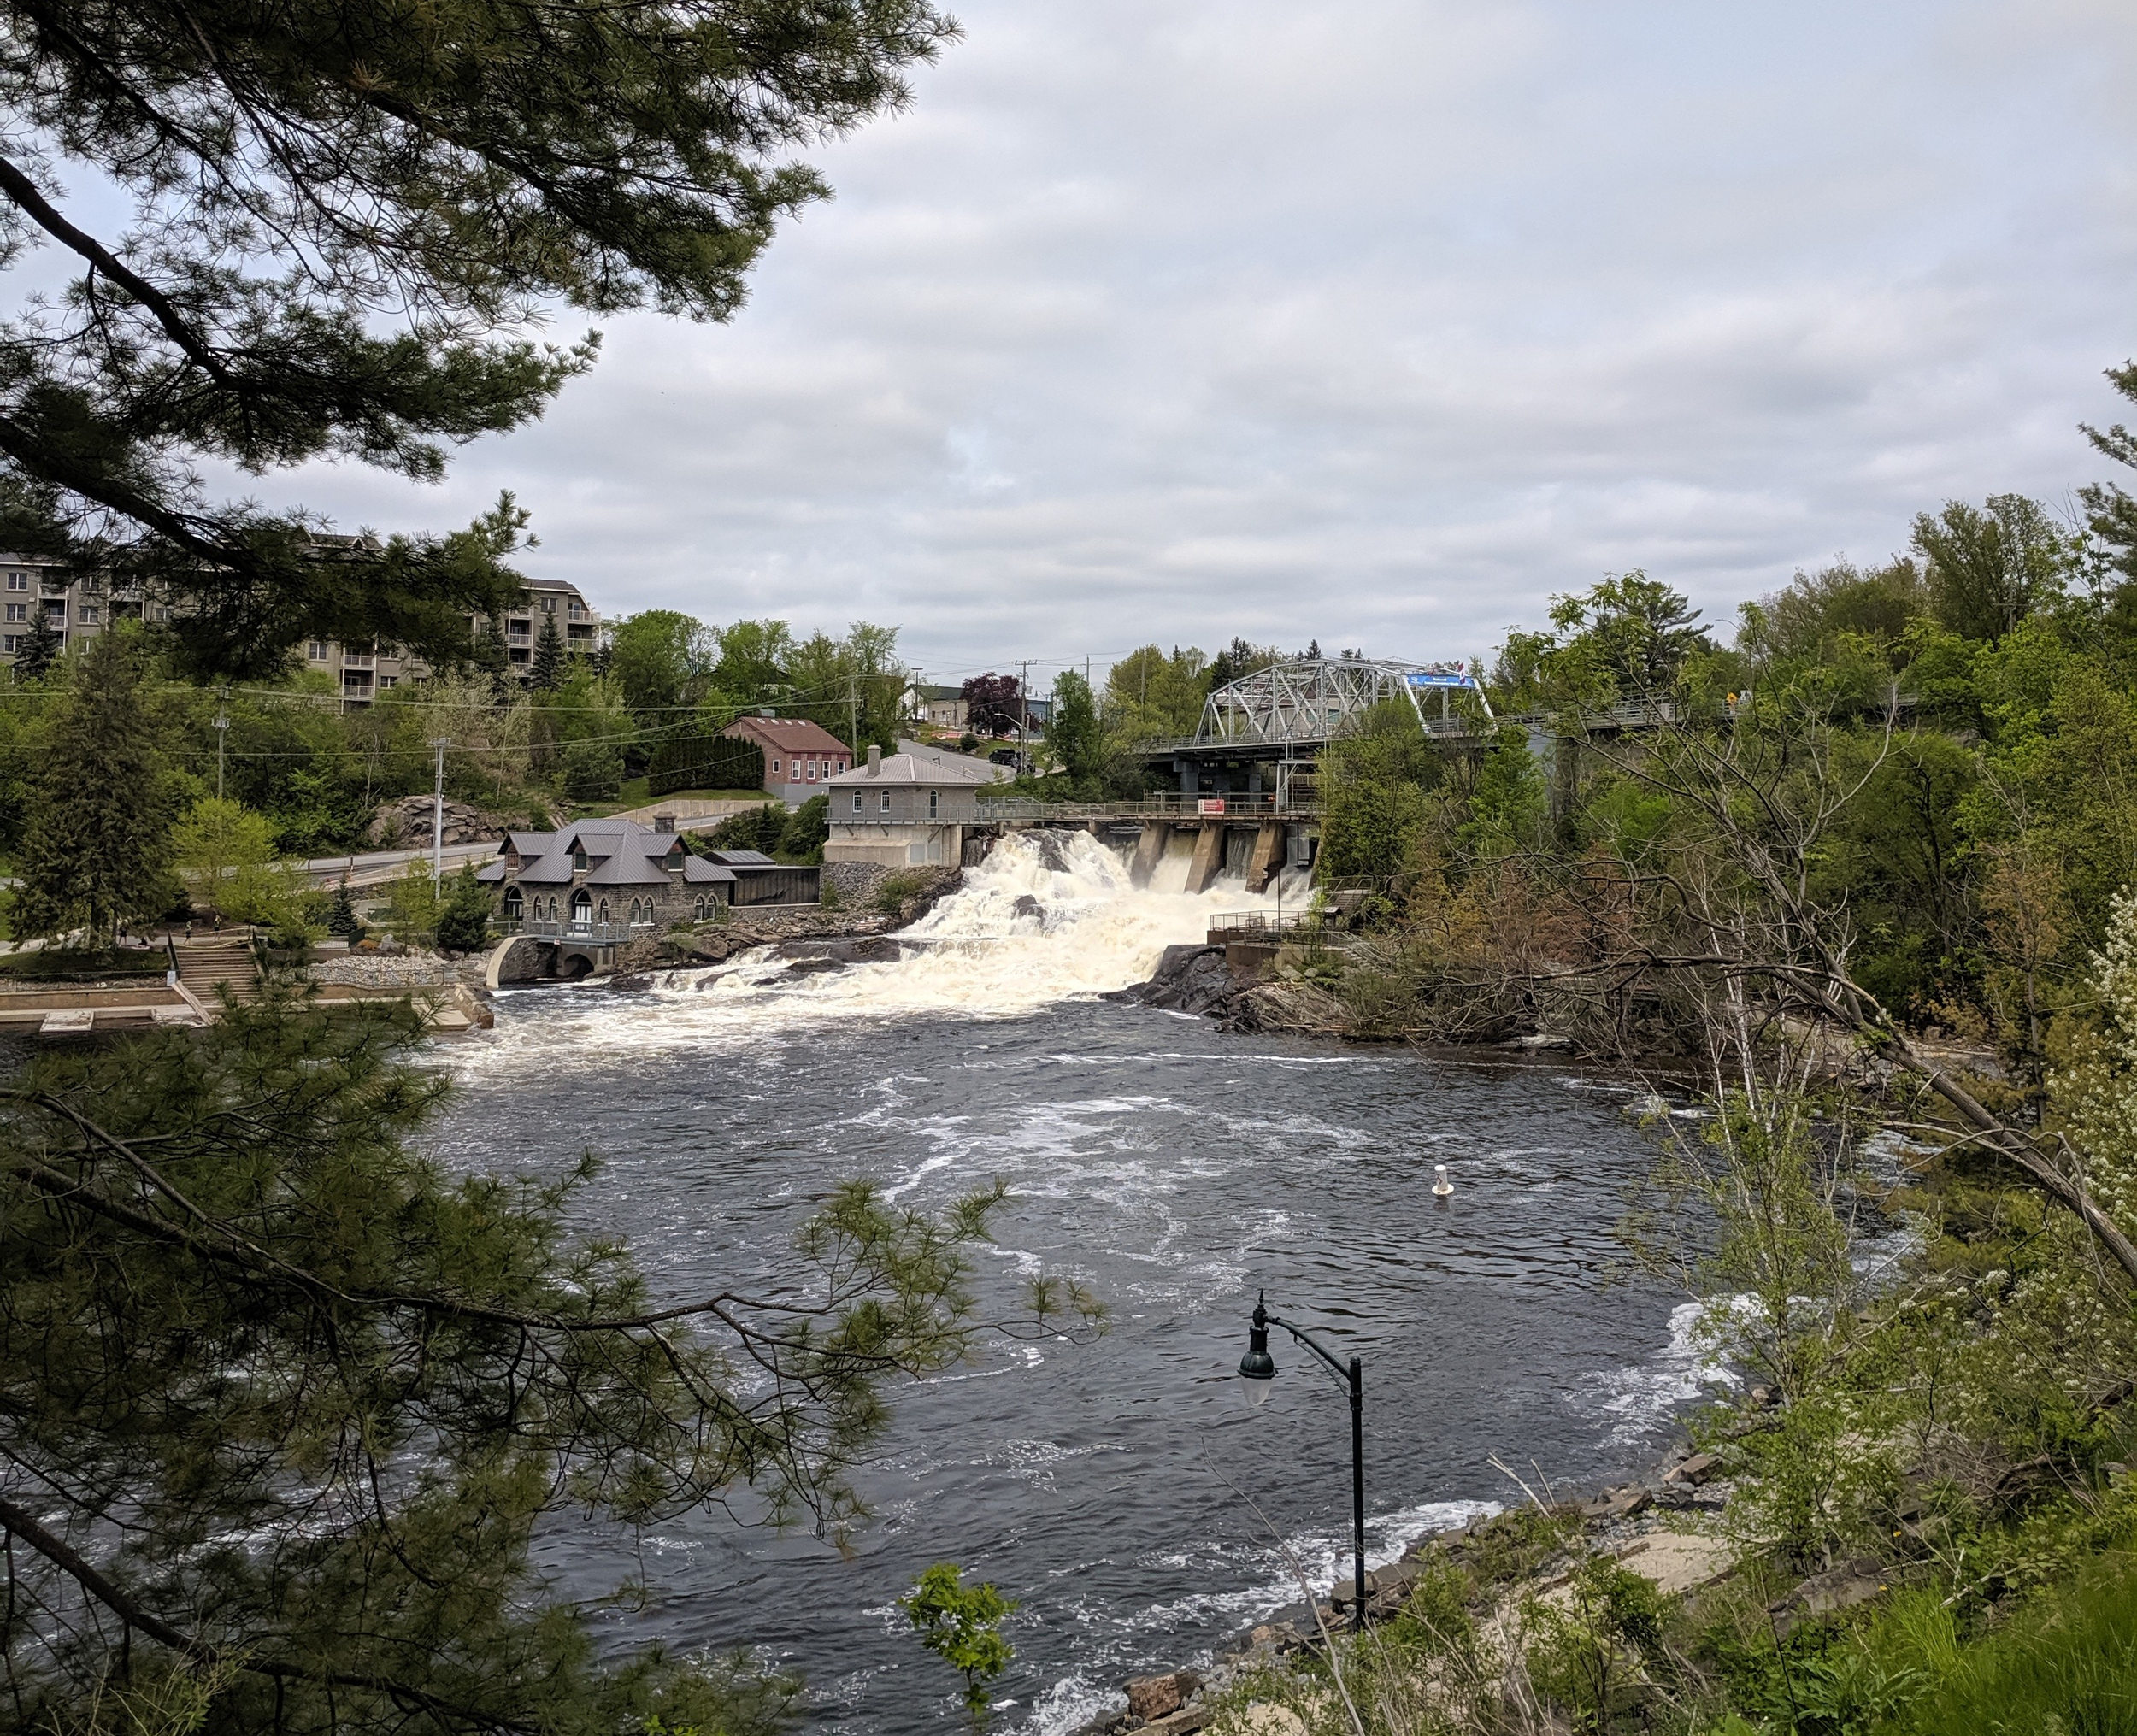 We are proud to grow in Bracebridge, Ontario - Bracebridge was one of the first municipalities in Canada to generate hydroelectric power. In 1894 the town built an 84 kilowatt generator, becoming a pioneer for renewable energy.125 years later, approximately 70 percent of Bracebridge electricity comes from hydro generation.We're proud to grow in a community that values sustainable practices and we aim to implement that theme of conservancy into everything we do.